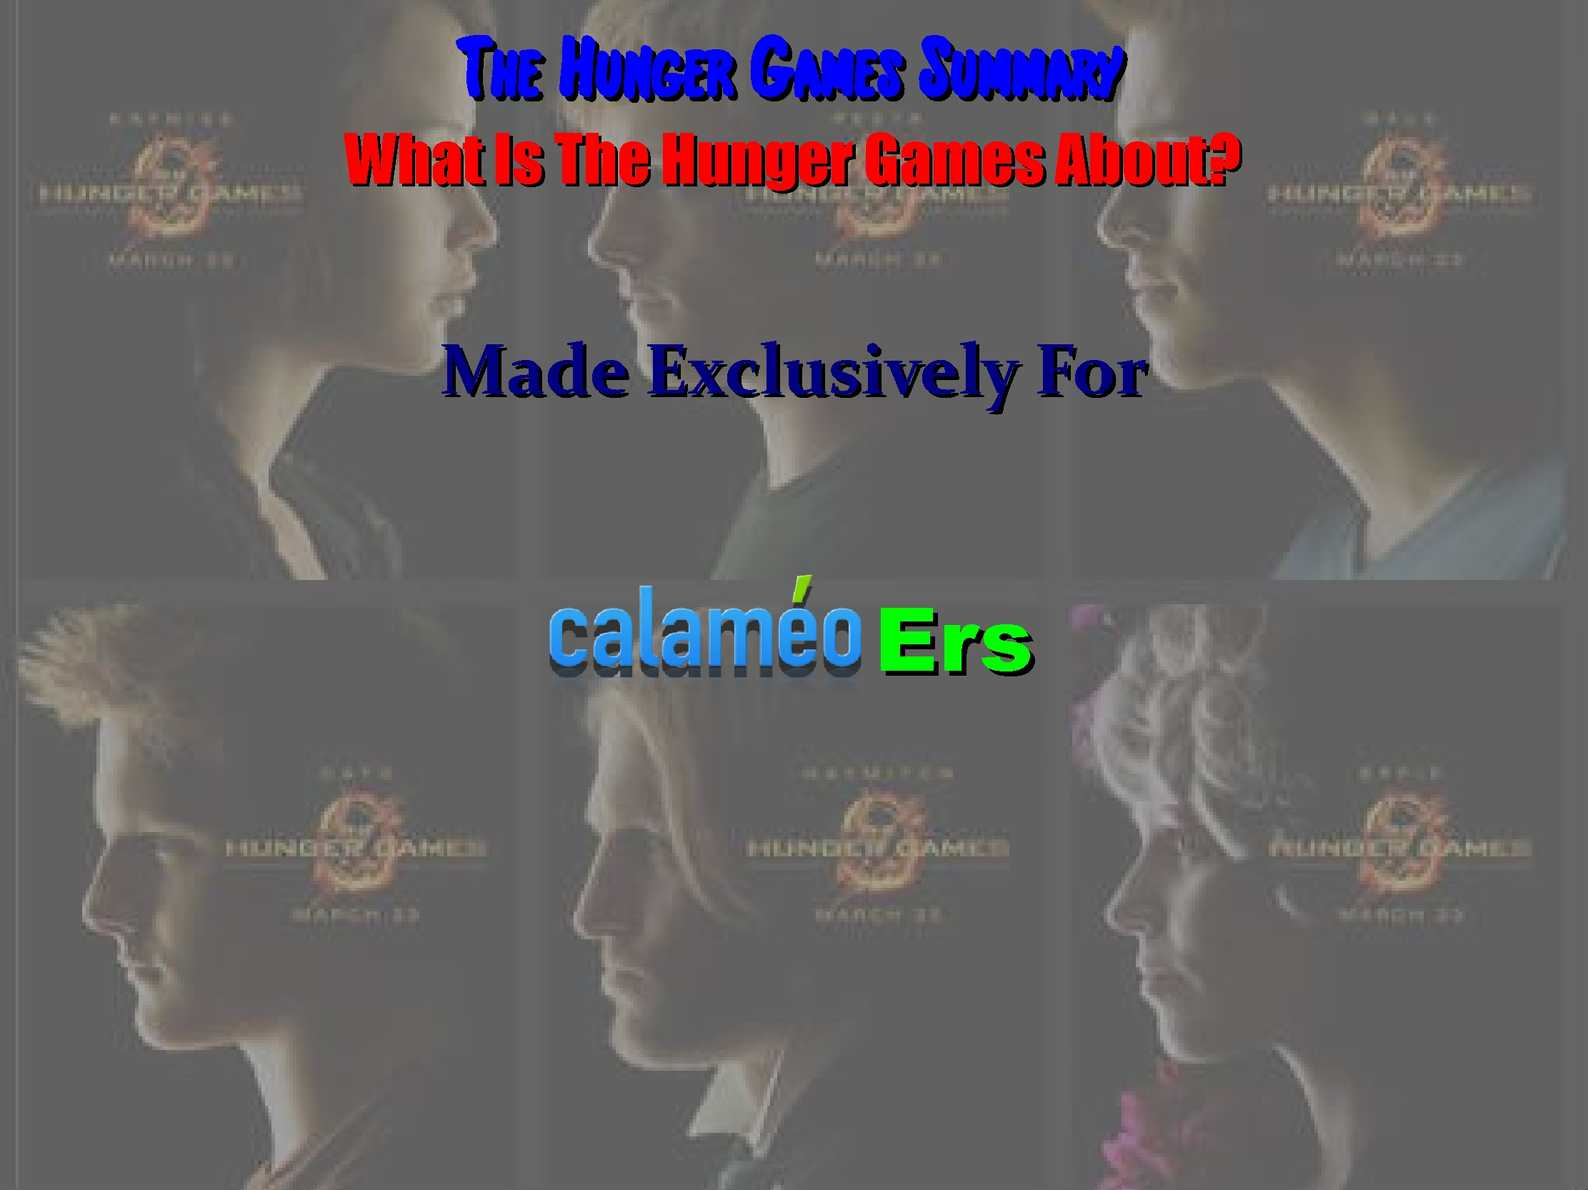 the hunger games first 50 pages summary Hunger games summary note: summary text provided by external source a chilling tale of survival from the new york times bestselling author.